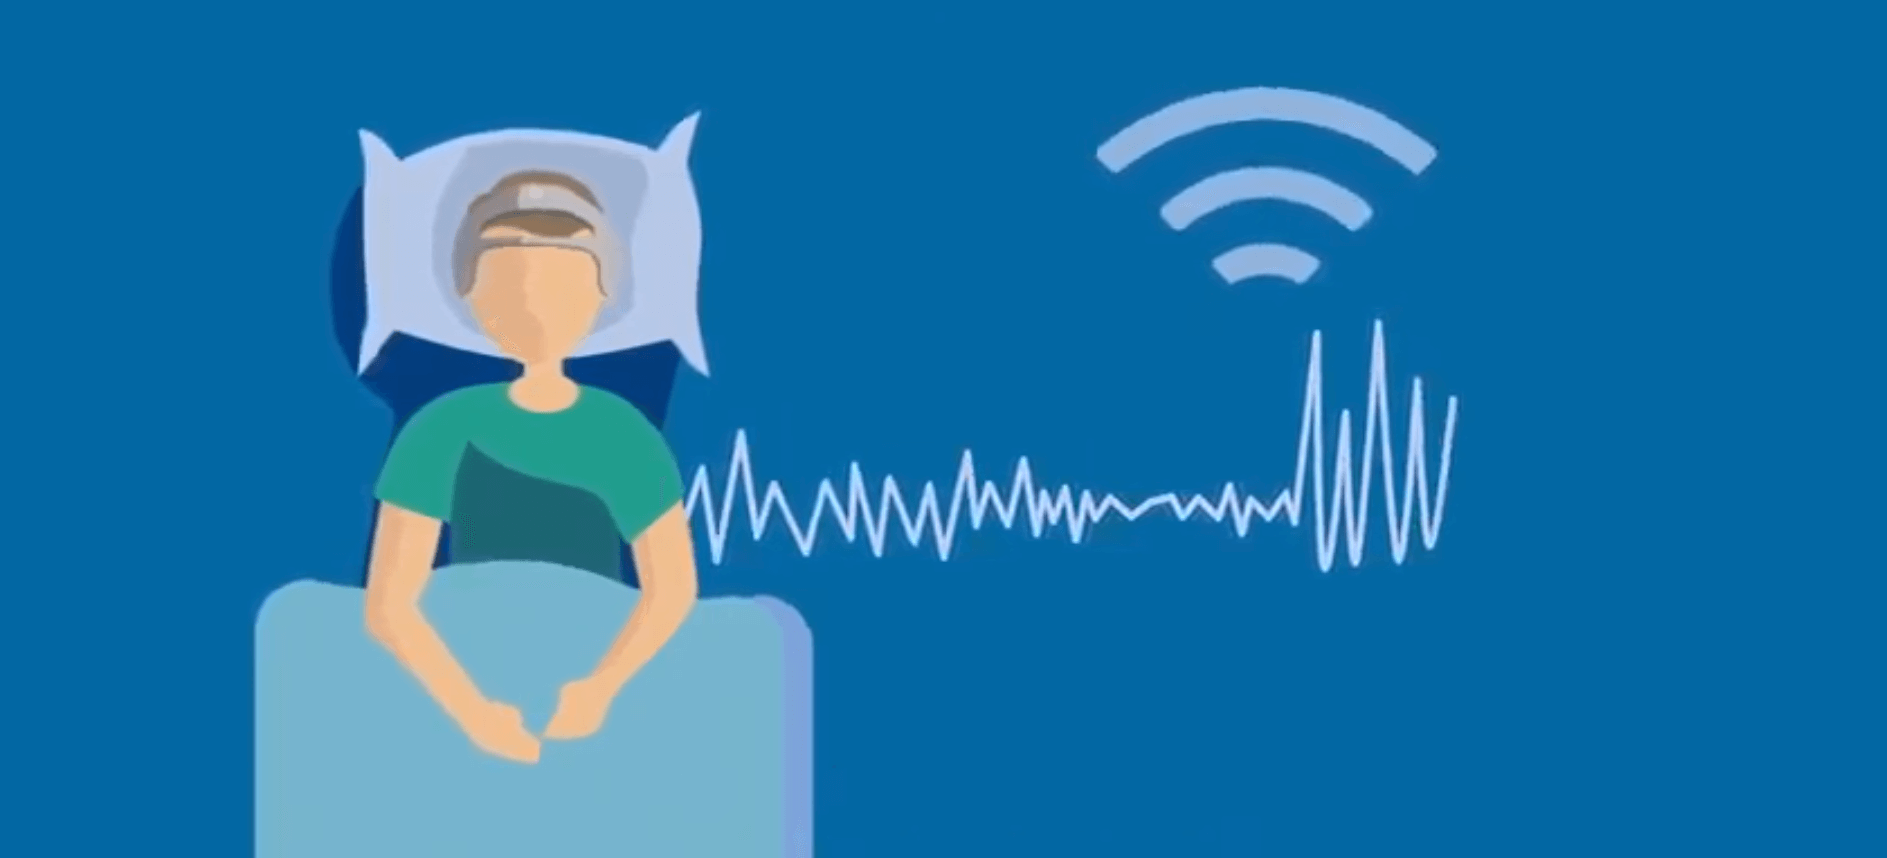 Sweet Dreams In A Headband? - The Philips SmartSleep Review - The